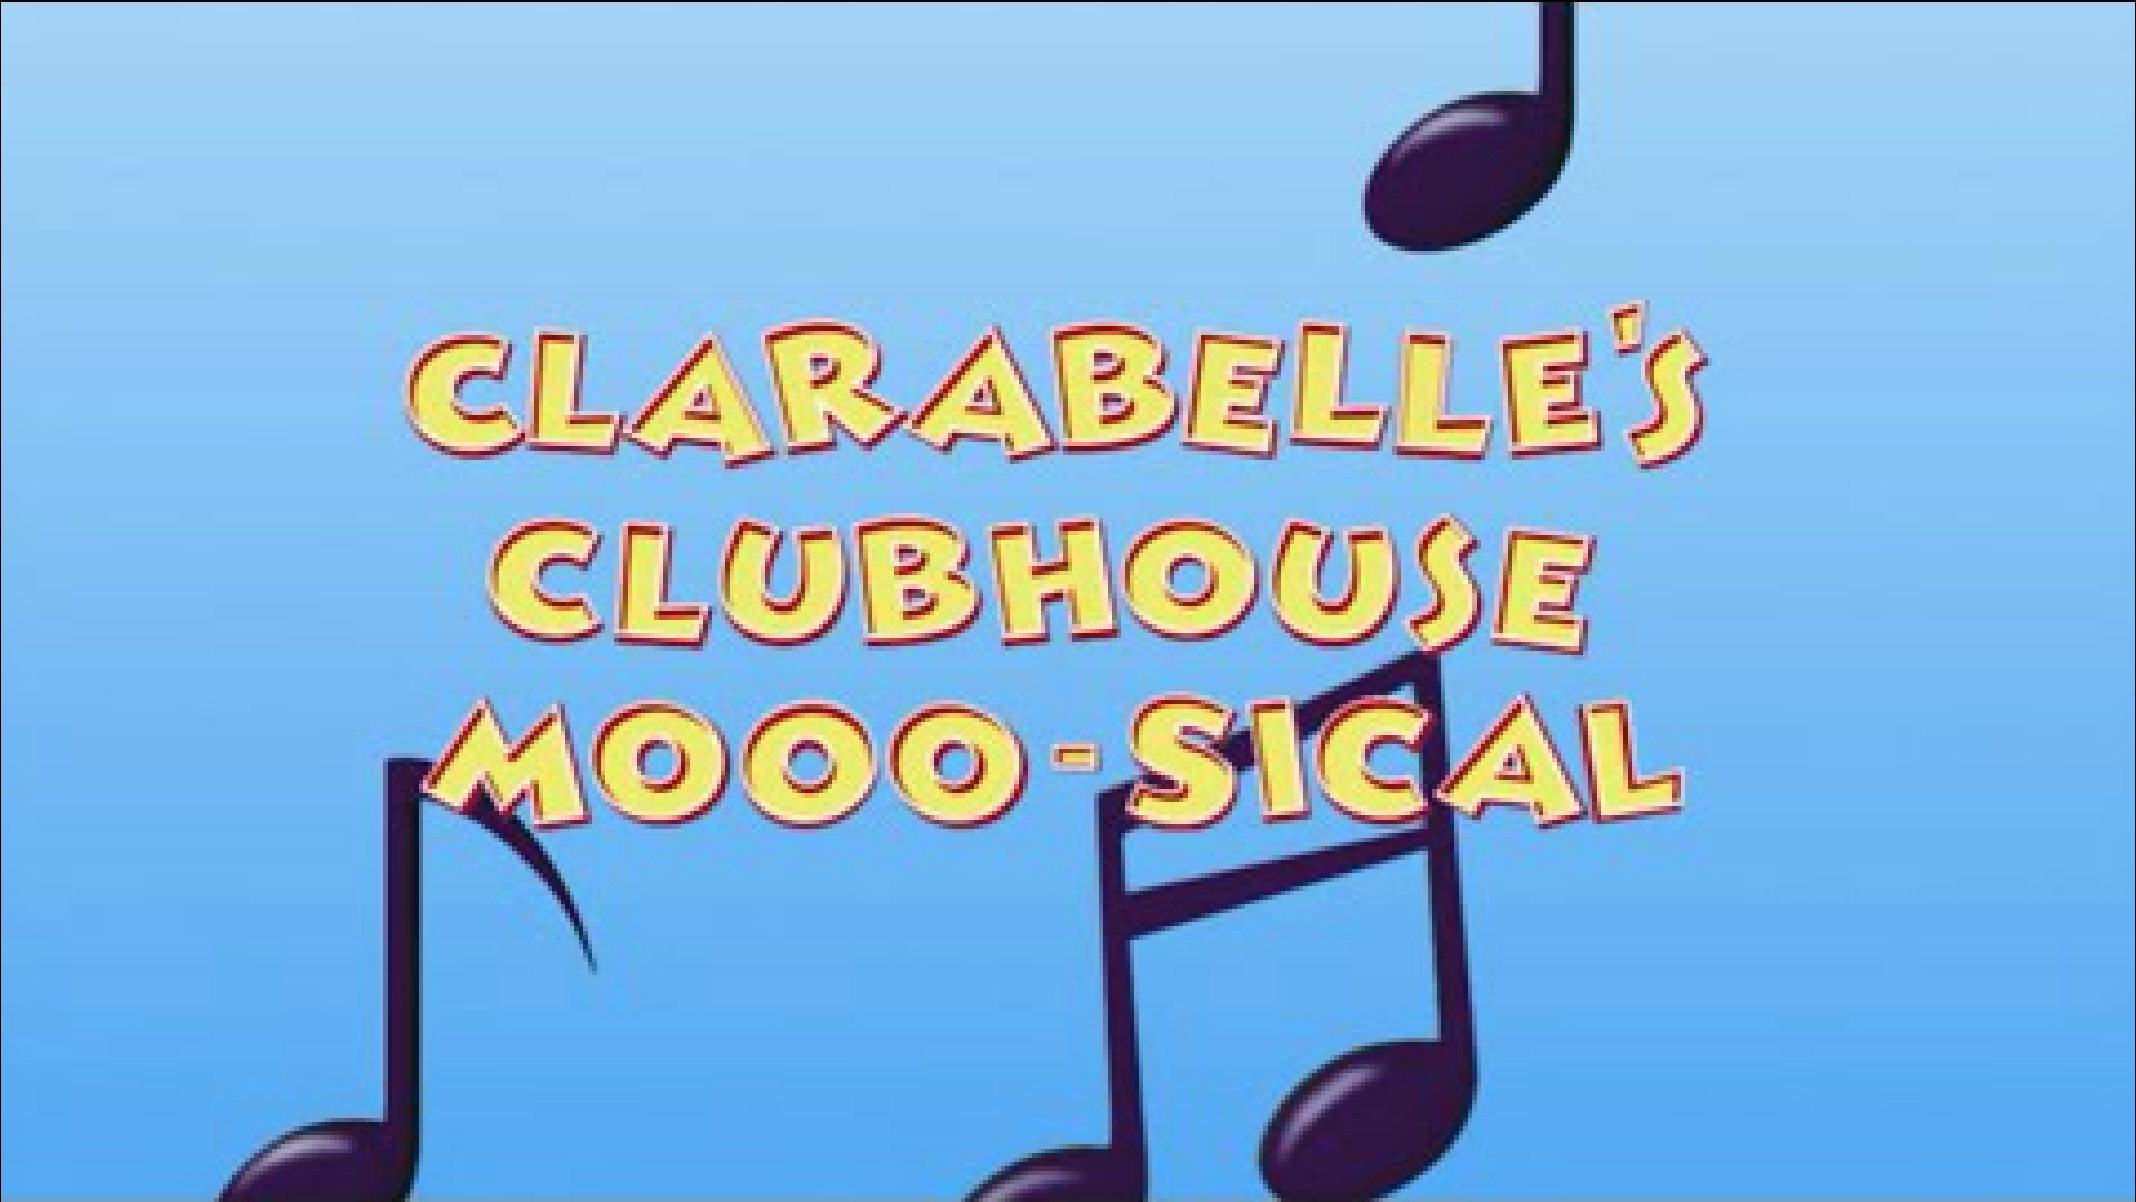 Clarabelle's Clubhouse Moo-sical